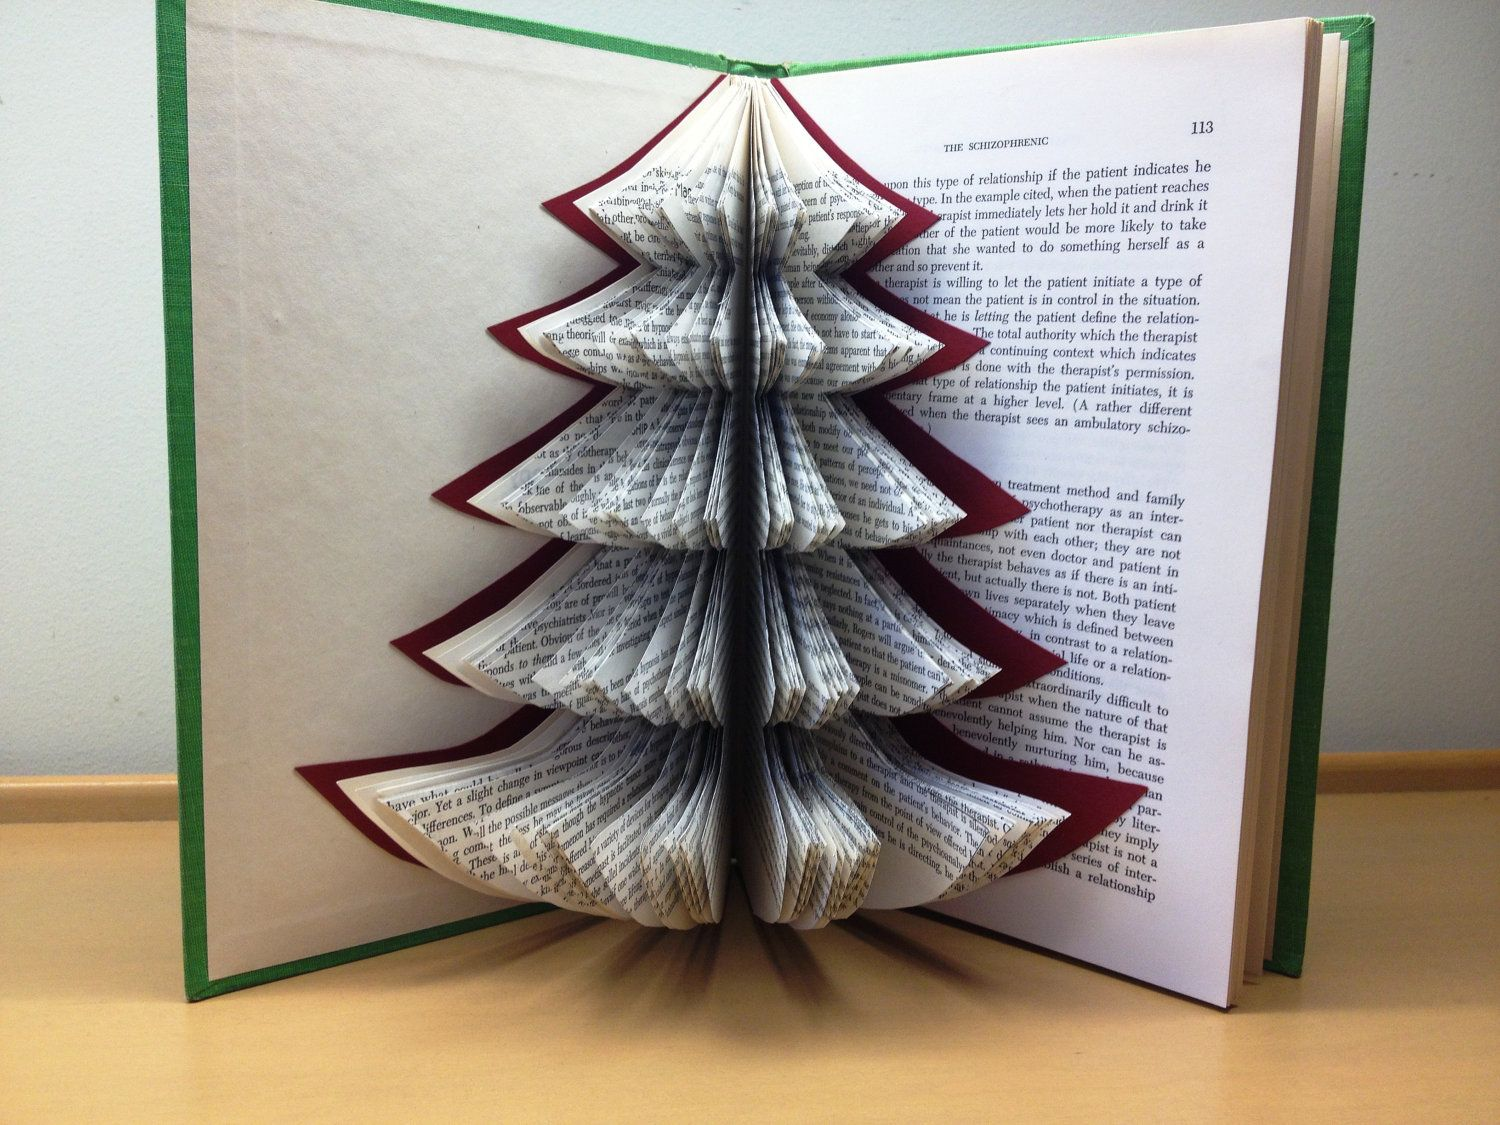 Christmas Tree Recycled Book Art Strategies Of By Pacifictides Old Book Crafts Folded Book Art Book Crafts